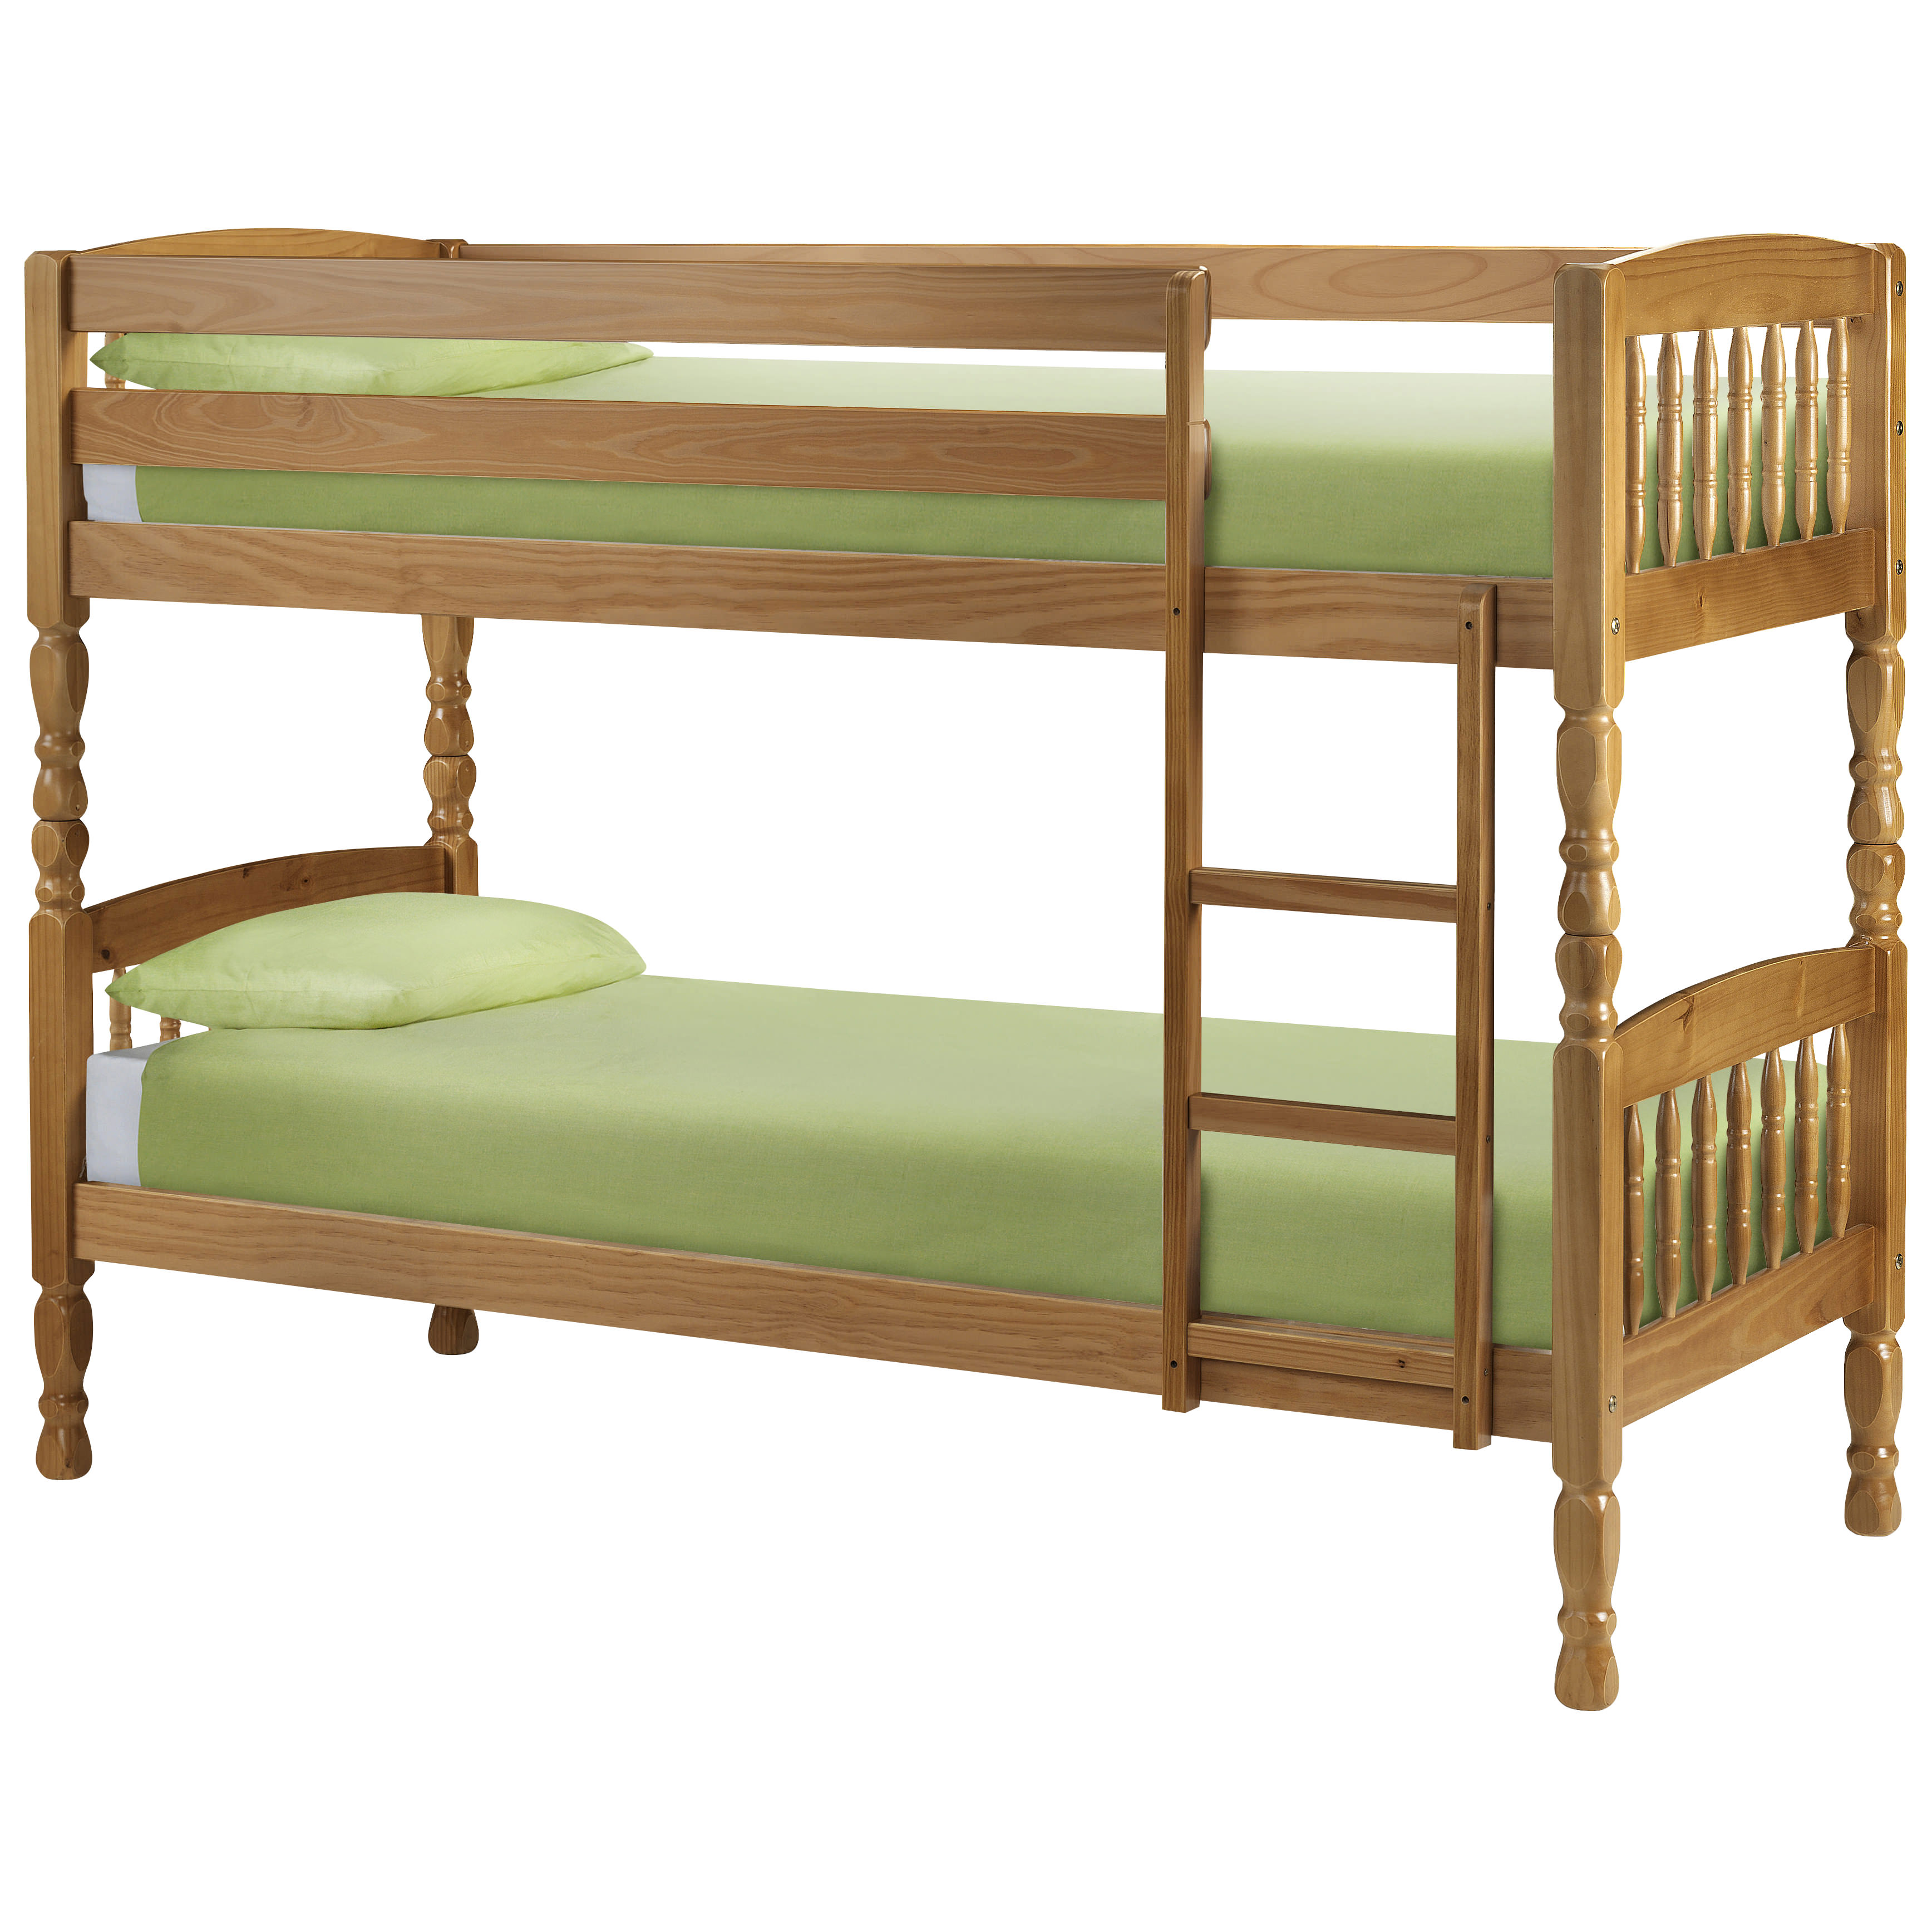 Details About Antique Pine Finish Childrens Kids Wooden Bunk Bed Frame Small Single 2ft6 3ft